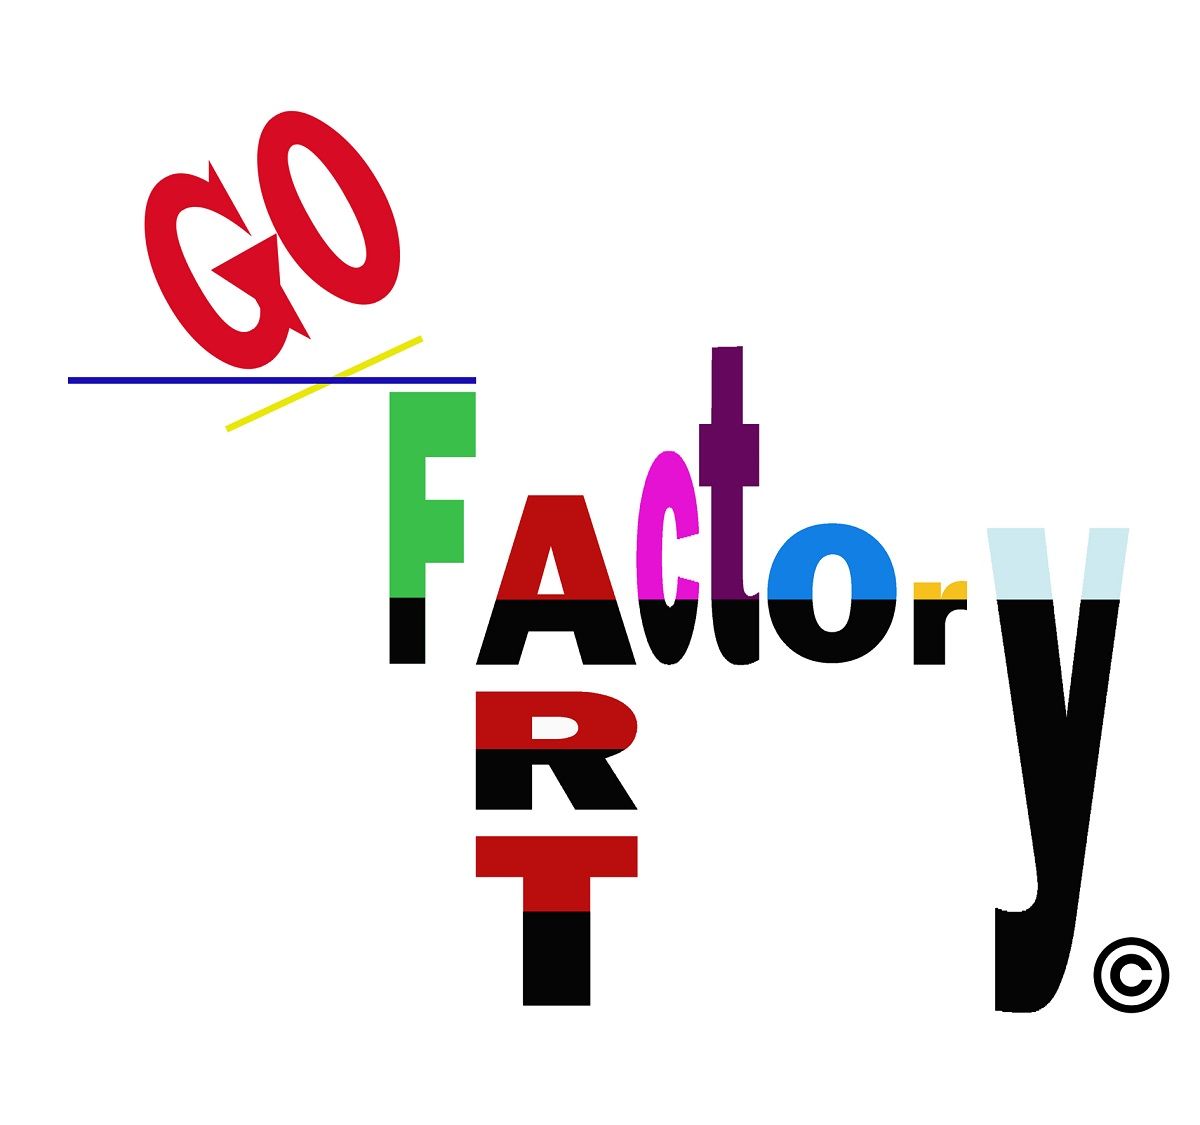 Logogo go art factory